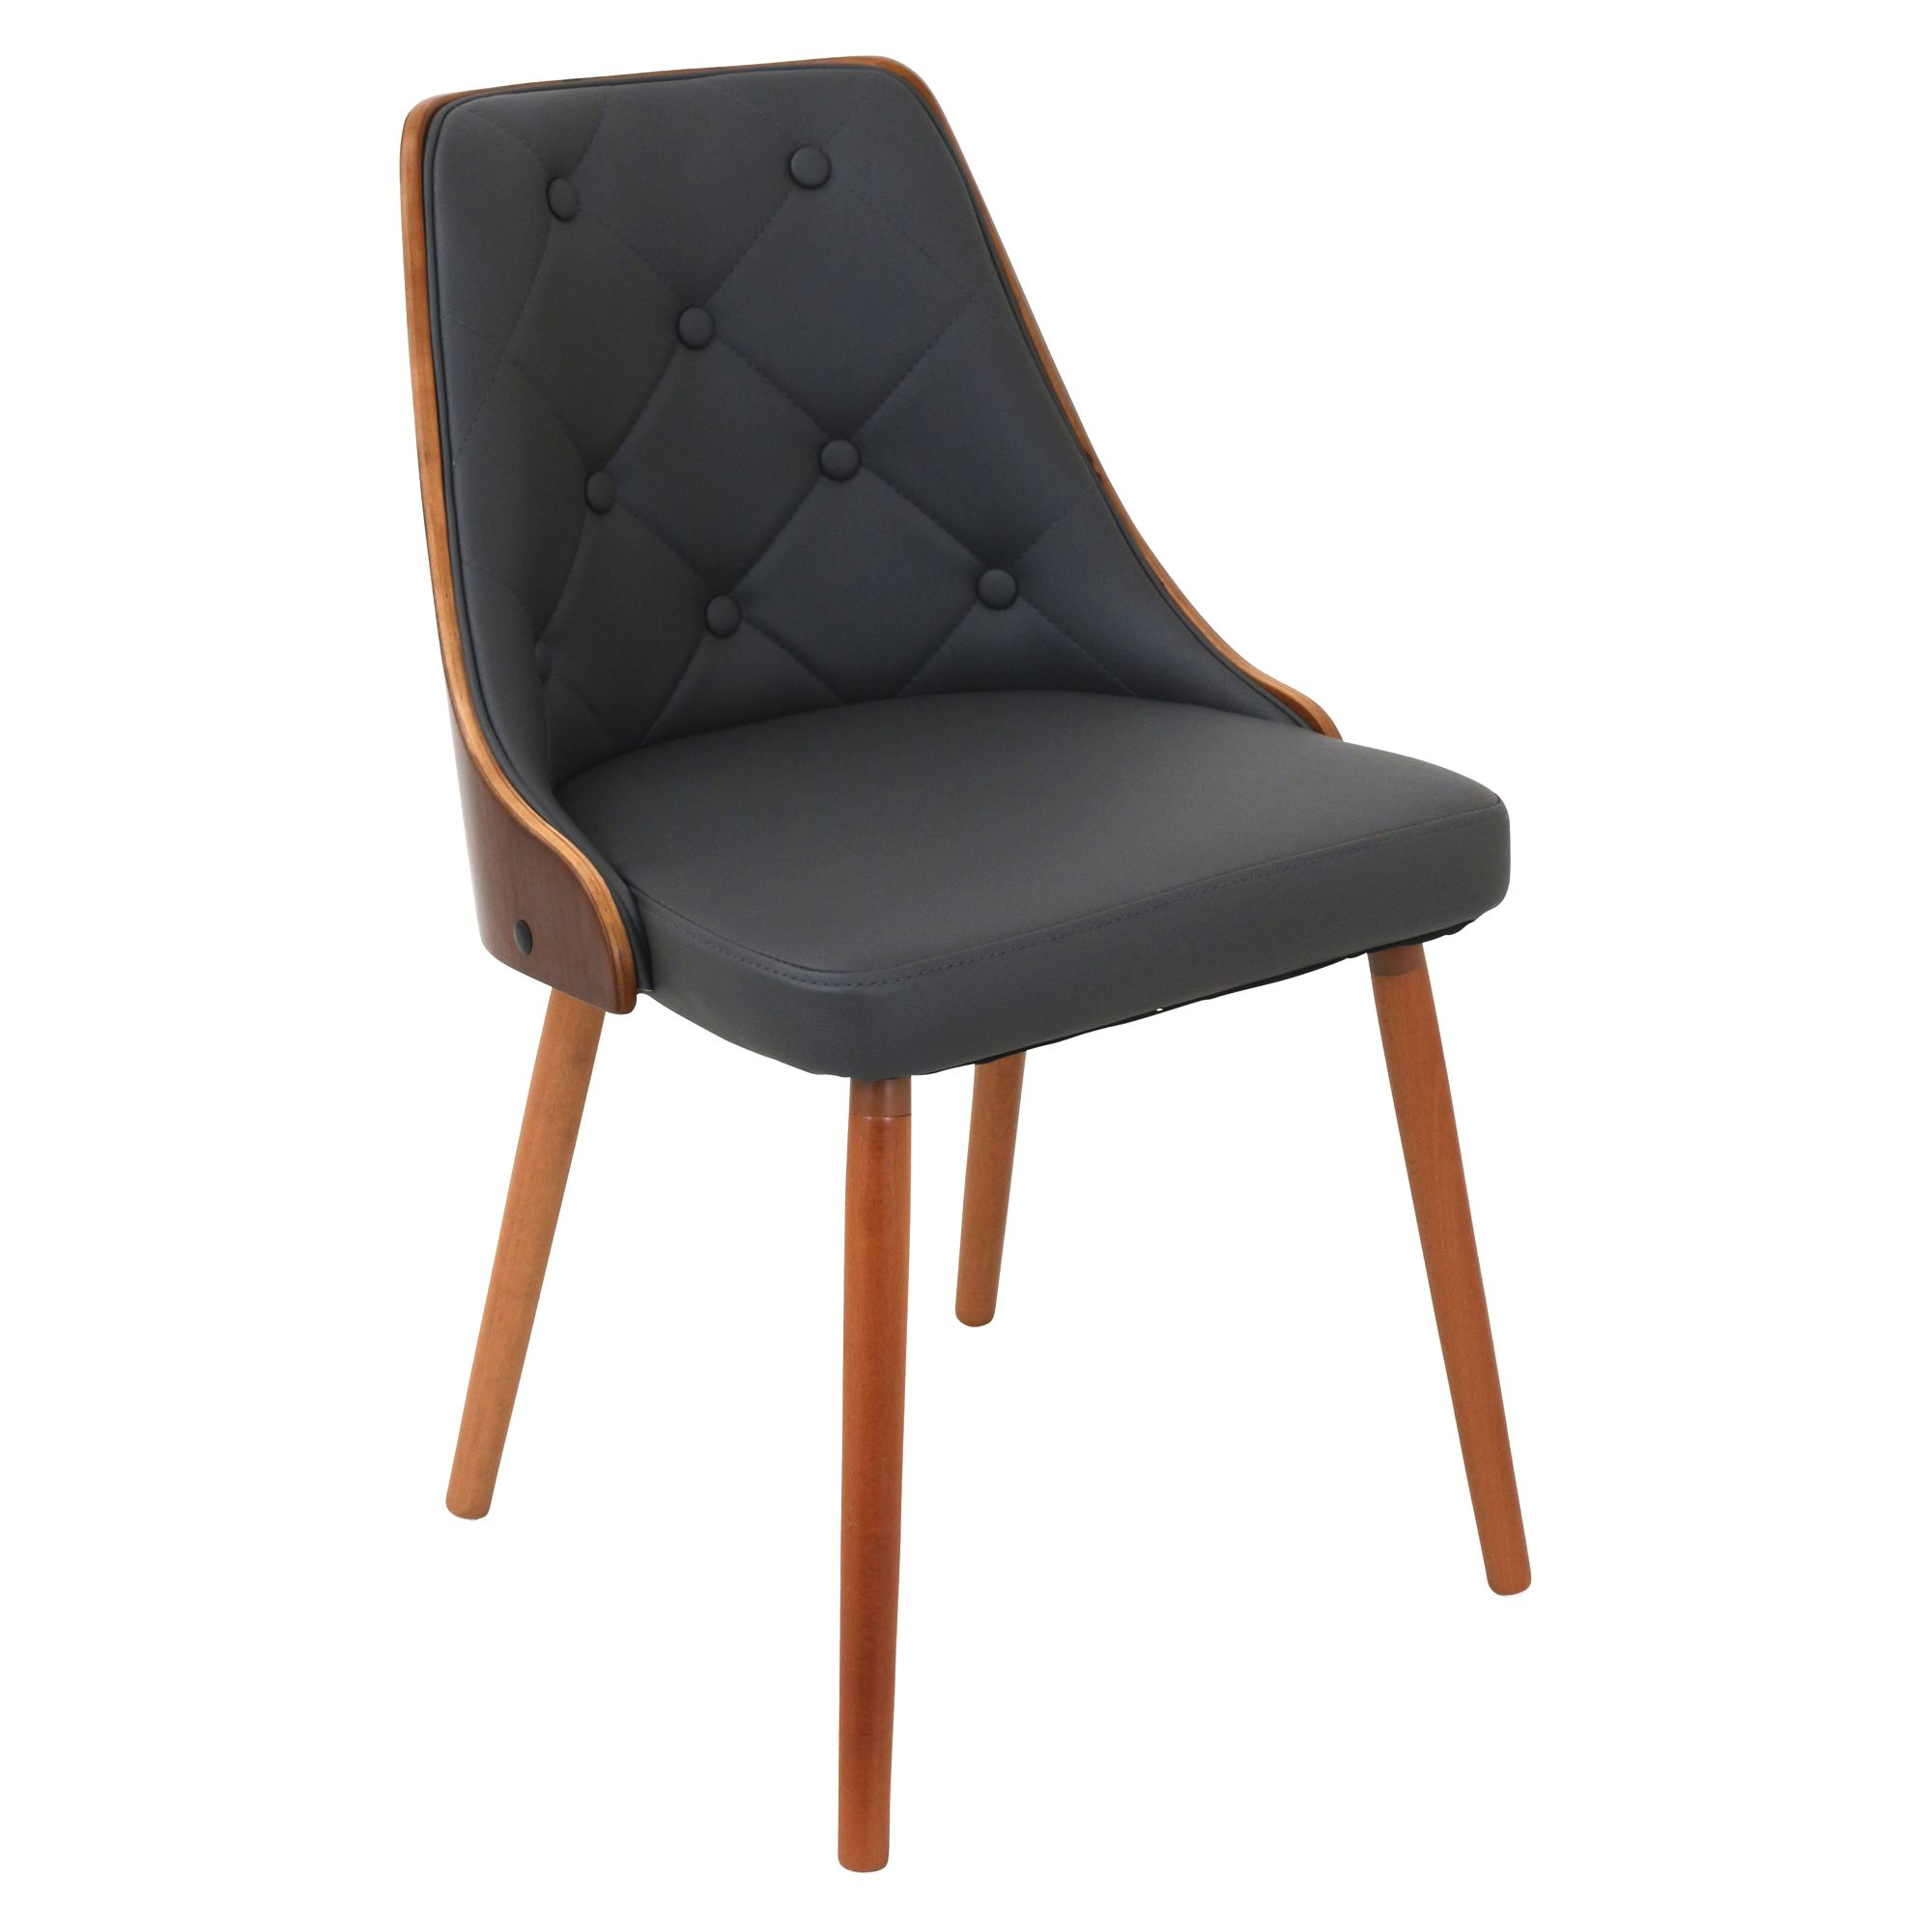 Gianna Mid Century Modern Dining/Accent Chair In Walnut With Grey Faux  Leather By LumiSource